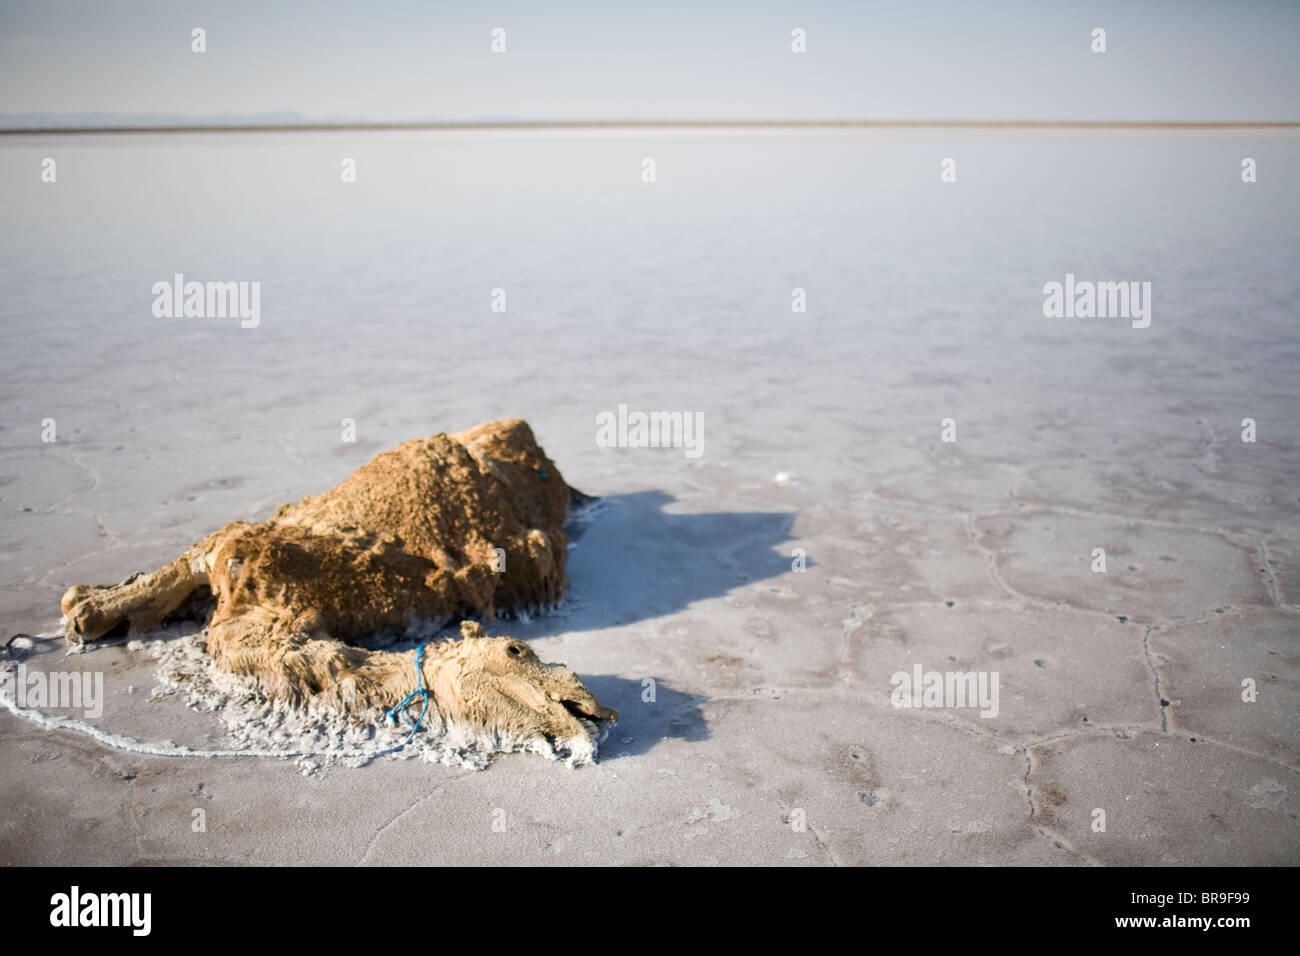 Dead camel in the middle of salt lake near Khur Iran. - Stock Image